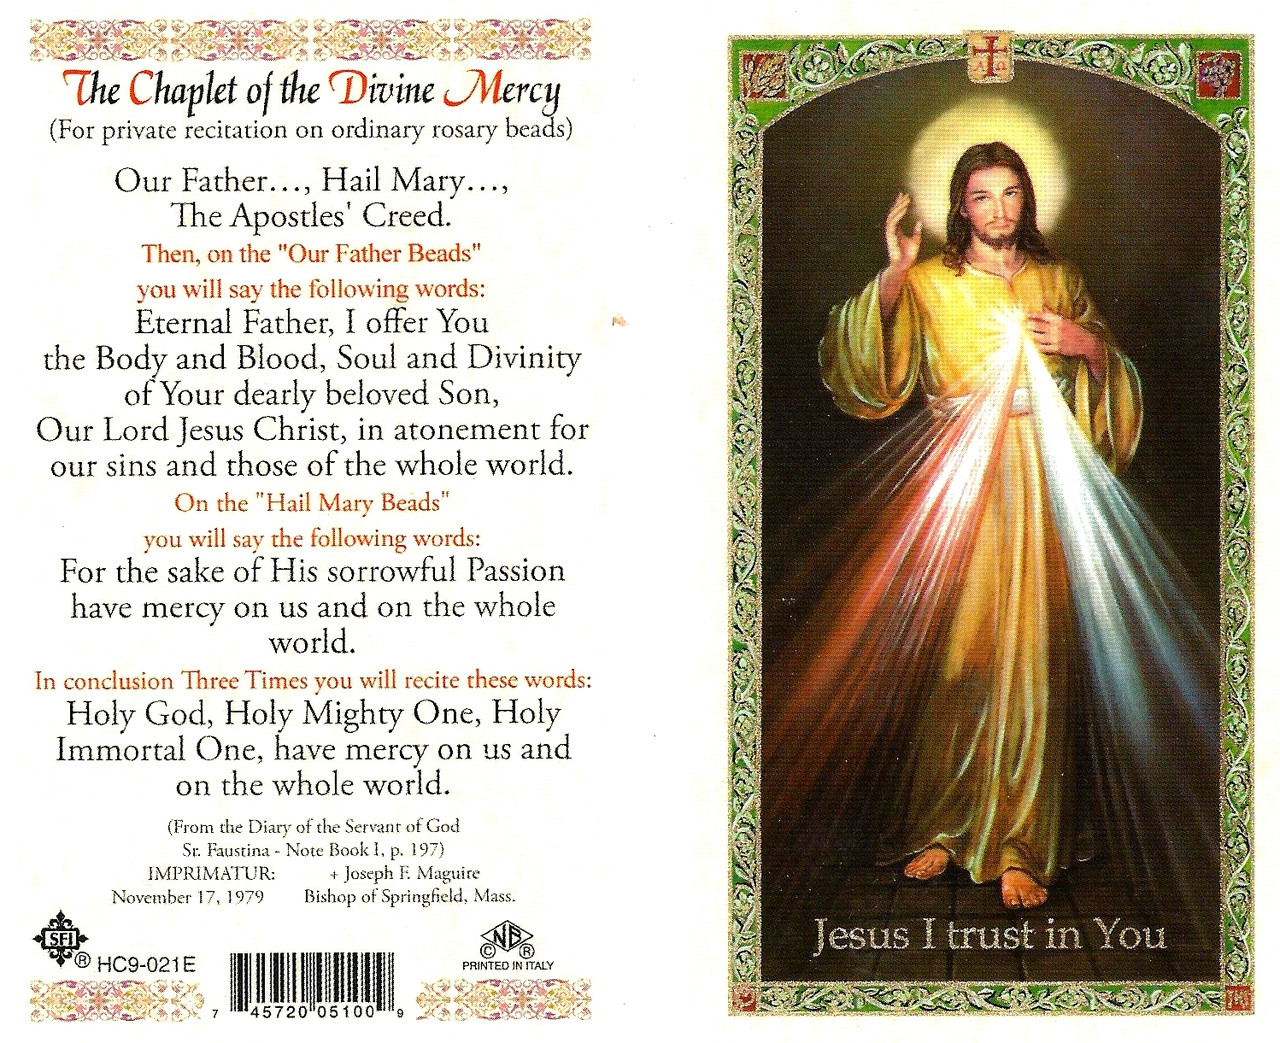 photo relating to Divine Mercy Chaplet Printable named The Chaplet of the Divine Mercy,Laminated prayer card